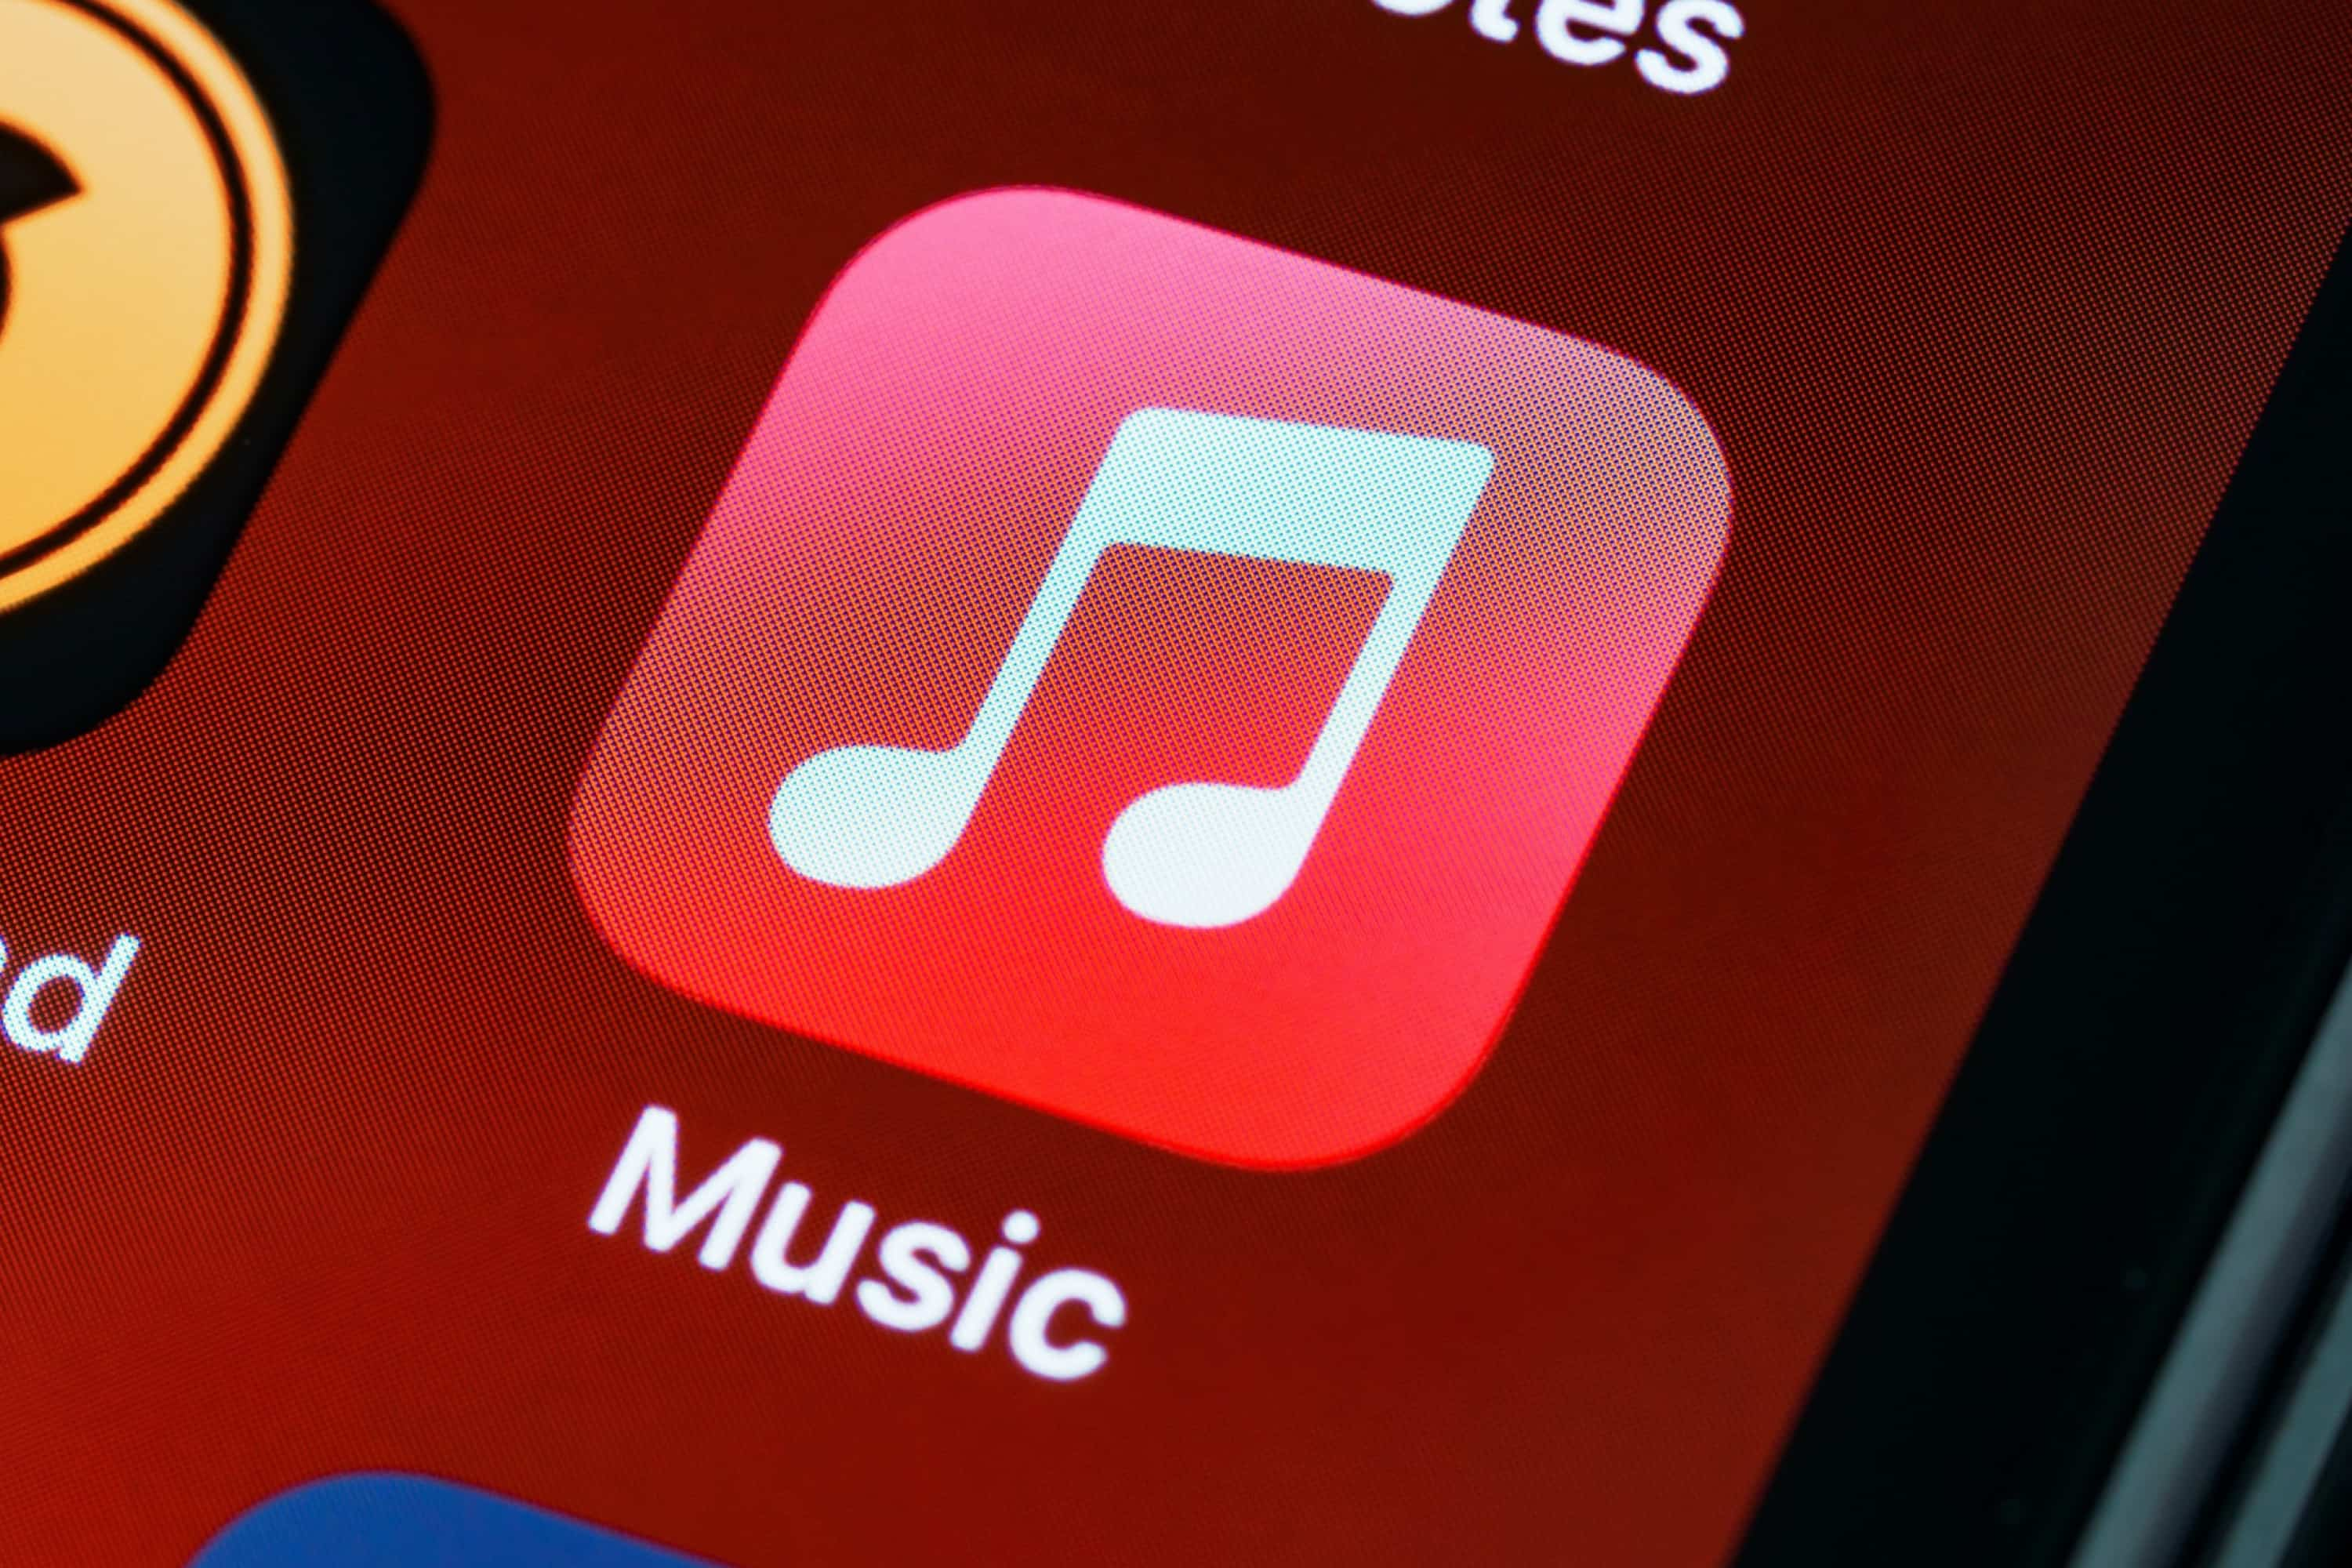 tiktok-users-can-get-4-months-free-of-apple-music-20201218-1